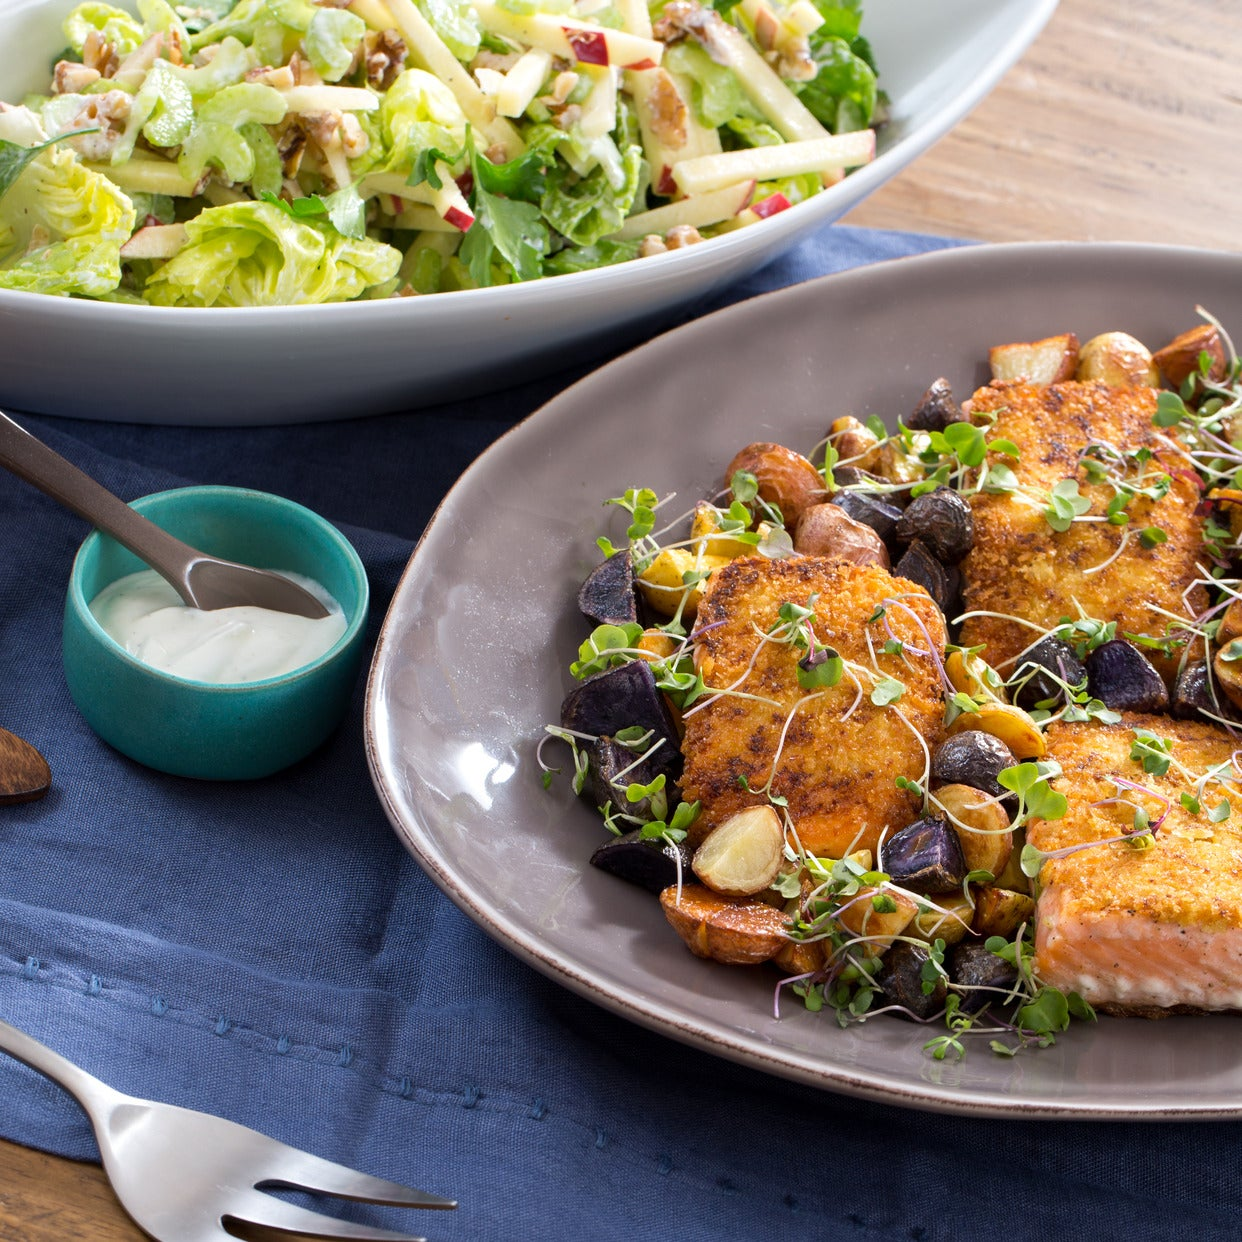 Panko-Crusted Mustard Salmon with Roasted Potatoes & Waldorf-Style Salad